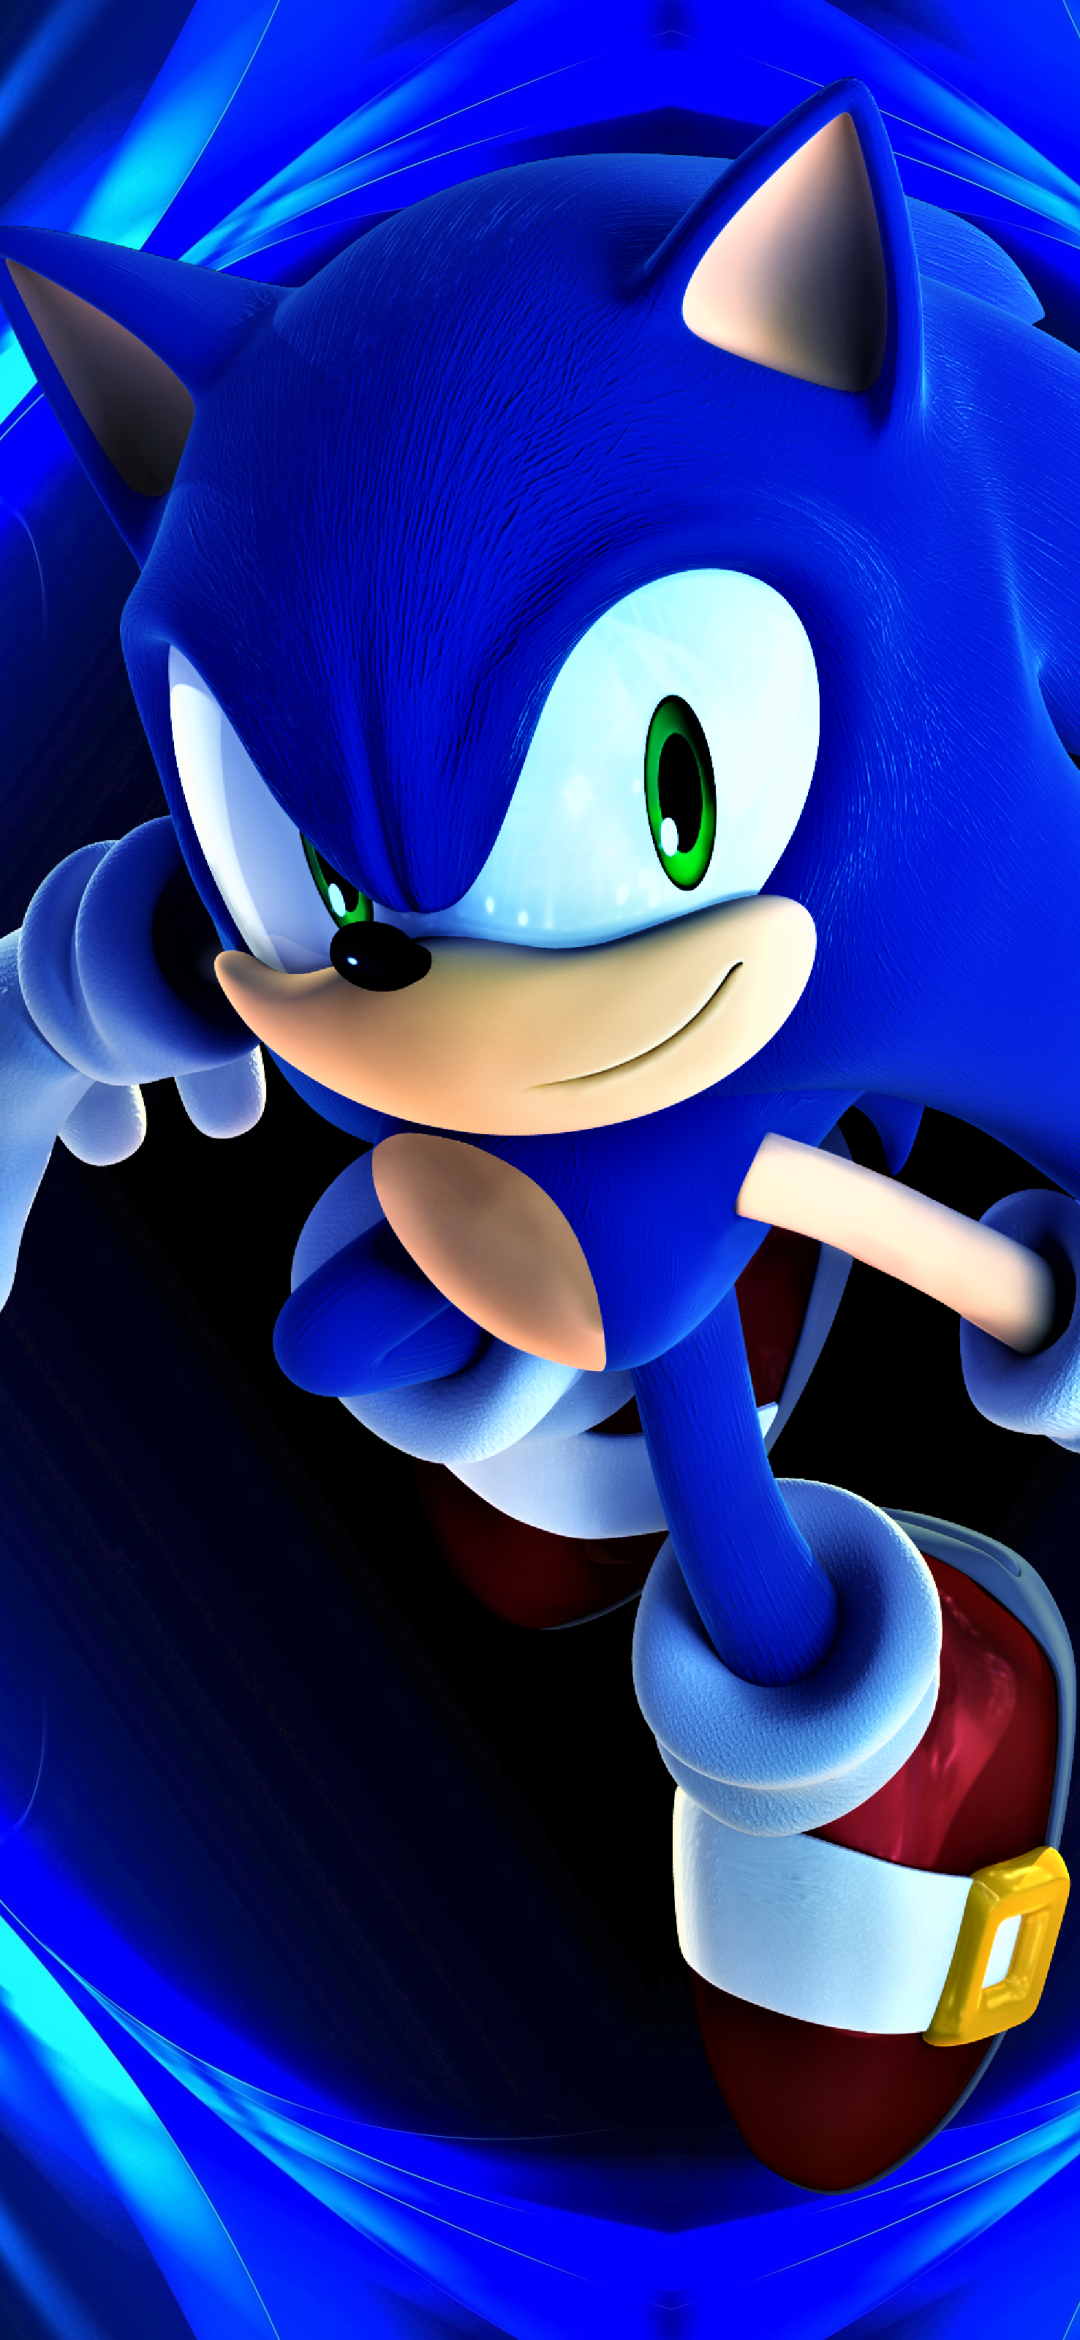 Video Game Sonic Colors 1080x2340 Wallpaper Id 795178 Mobile Abyss